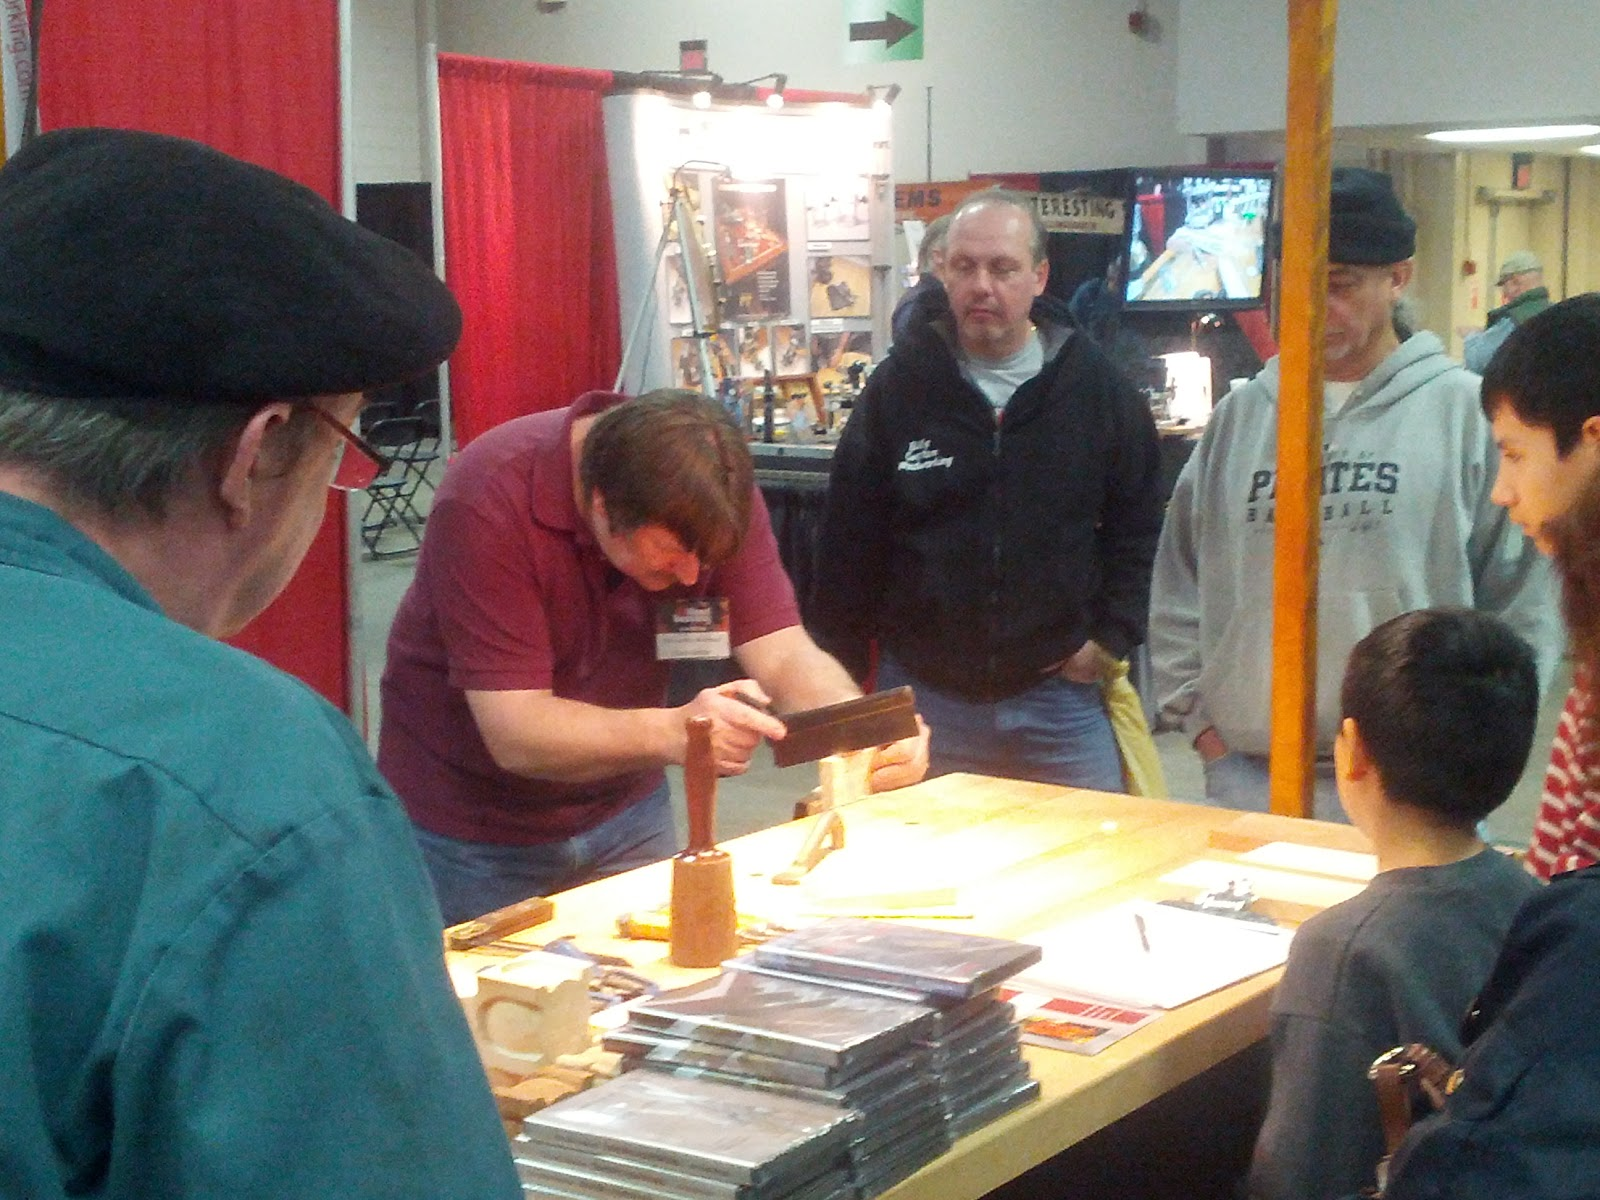 woodworking show new jersey 2013 | Woodworking Project North Carolina